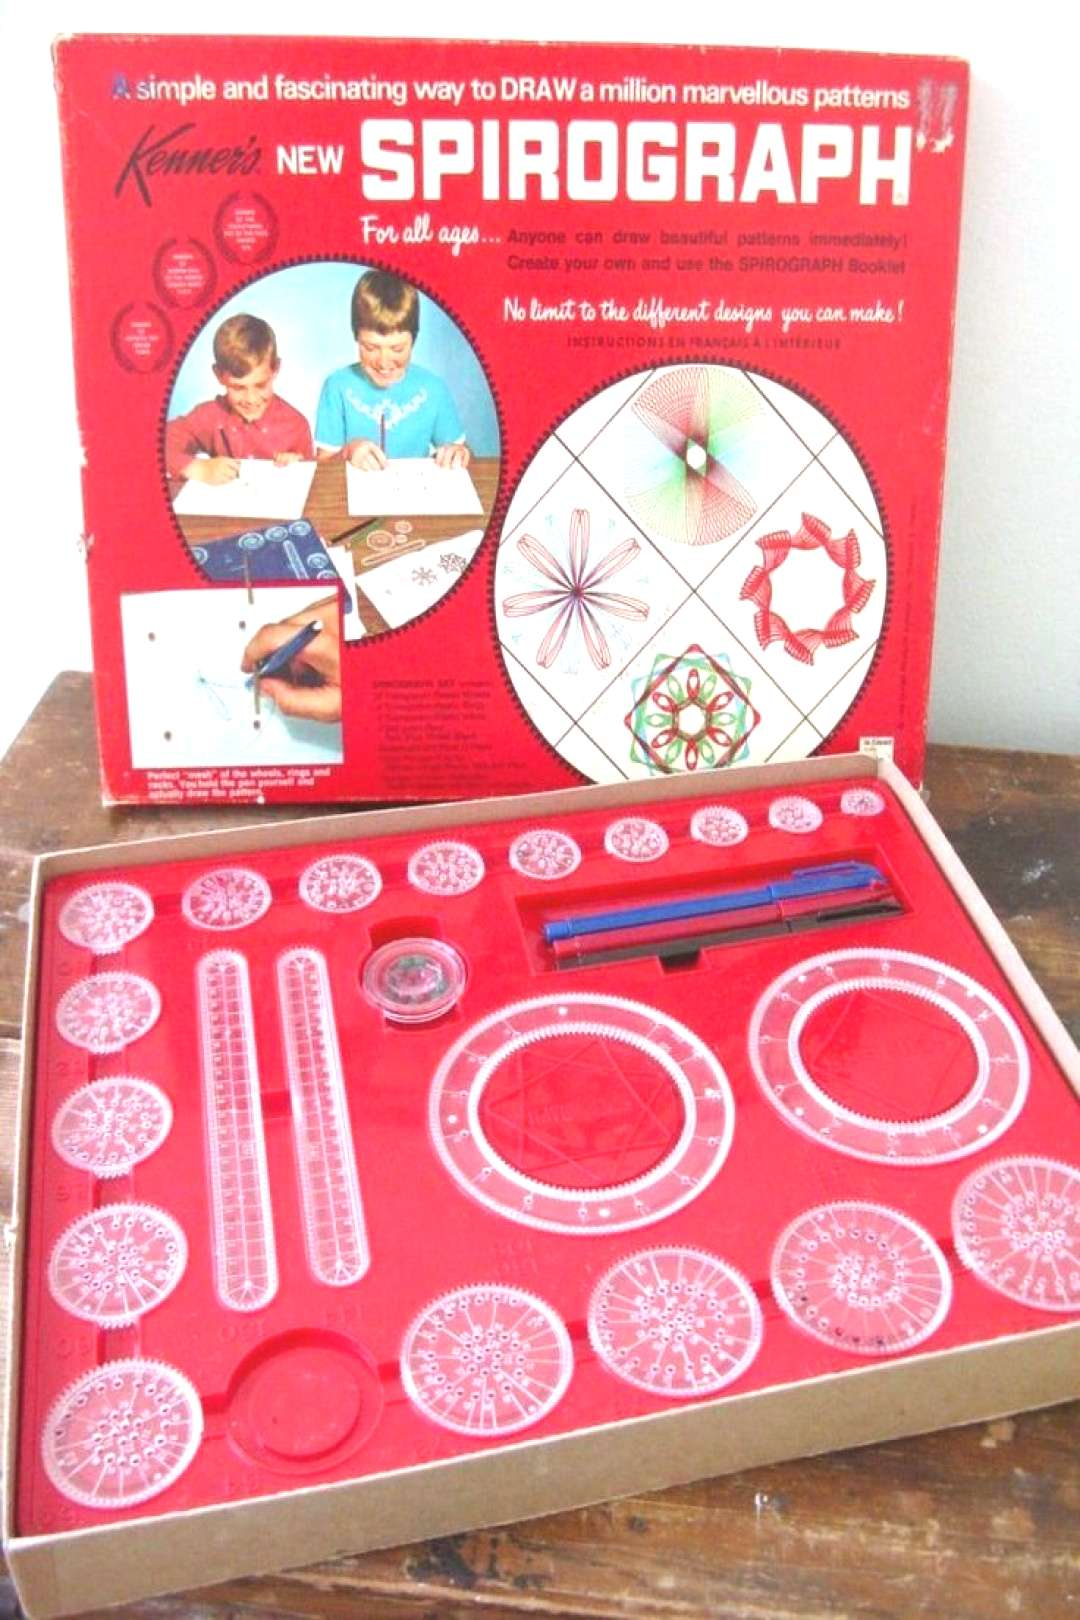 22 Best Childhood Memories 60s - vintagetopia As an individual, traumatic experiences keep you pre